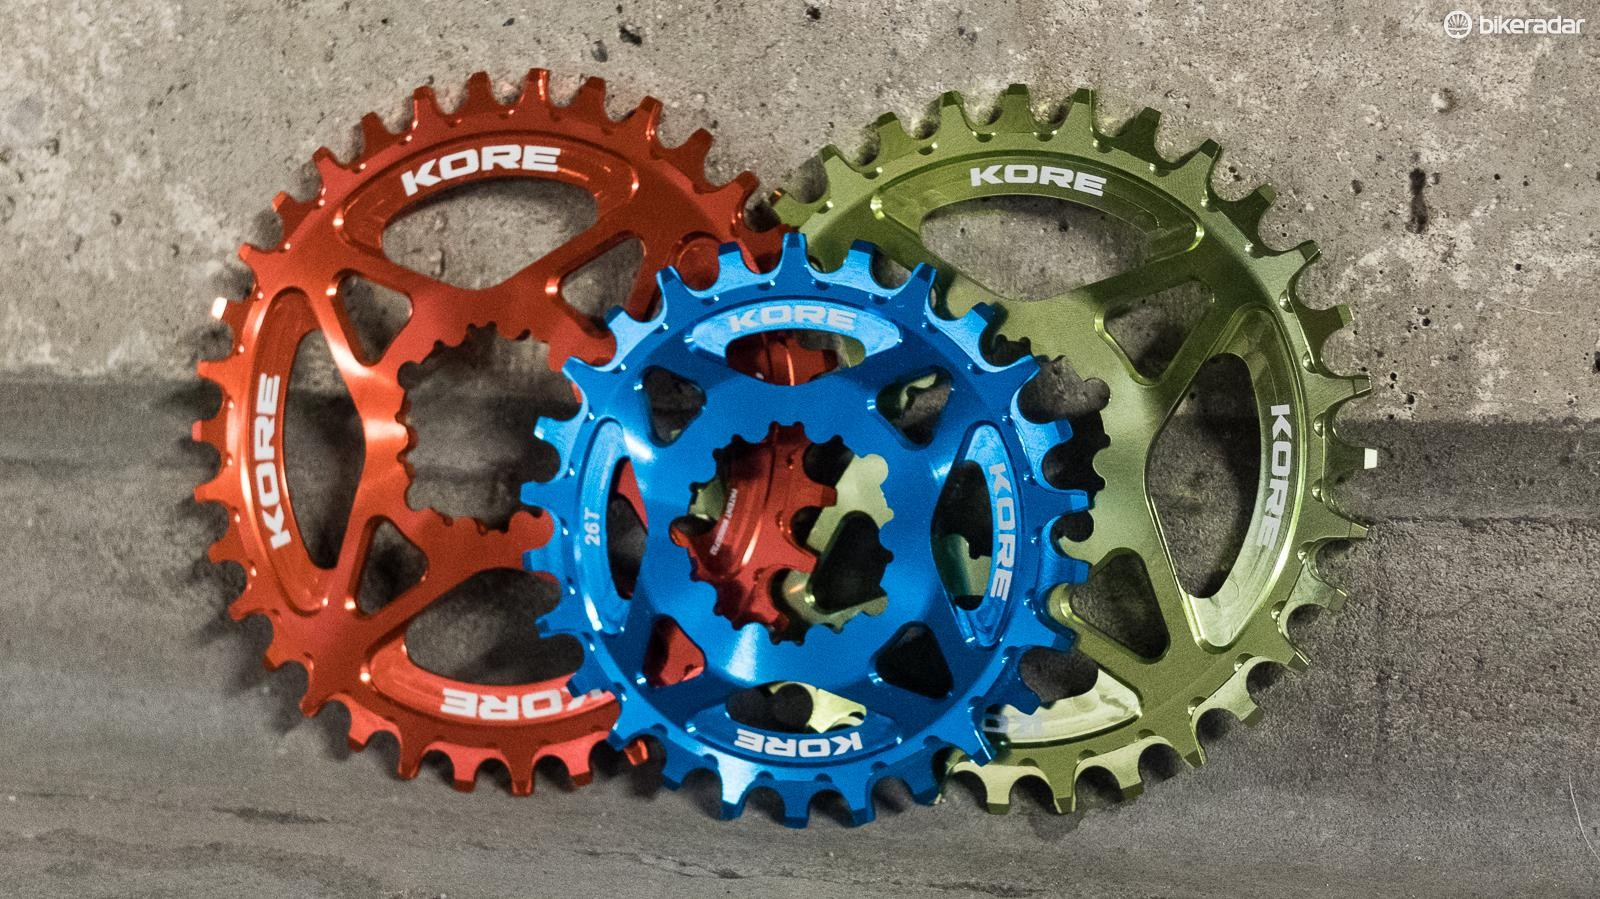 Kore claims the narrow/wide tooth design improves chain retention